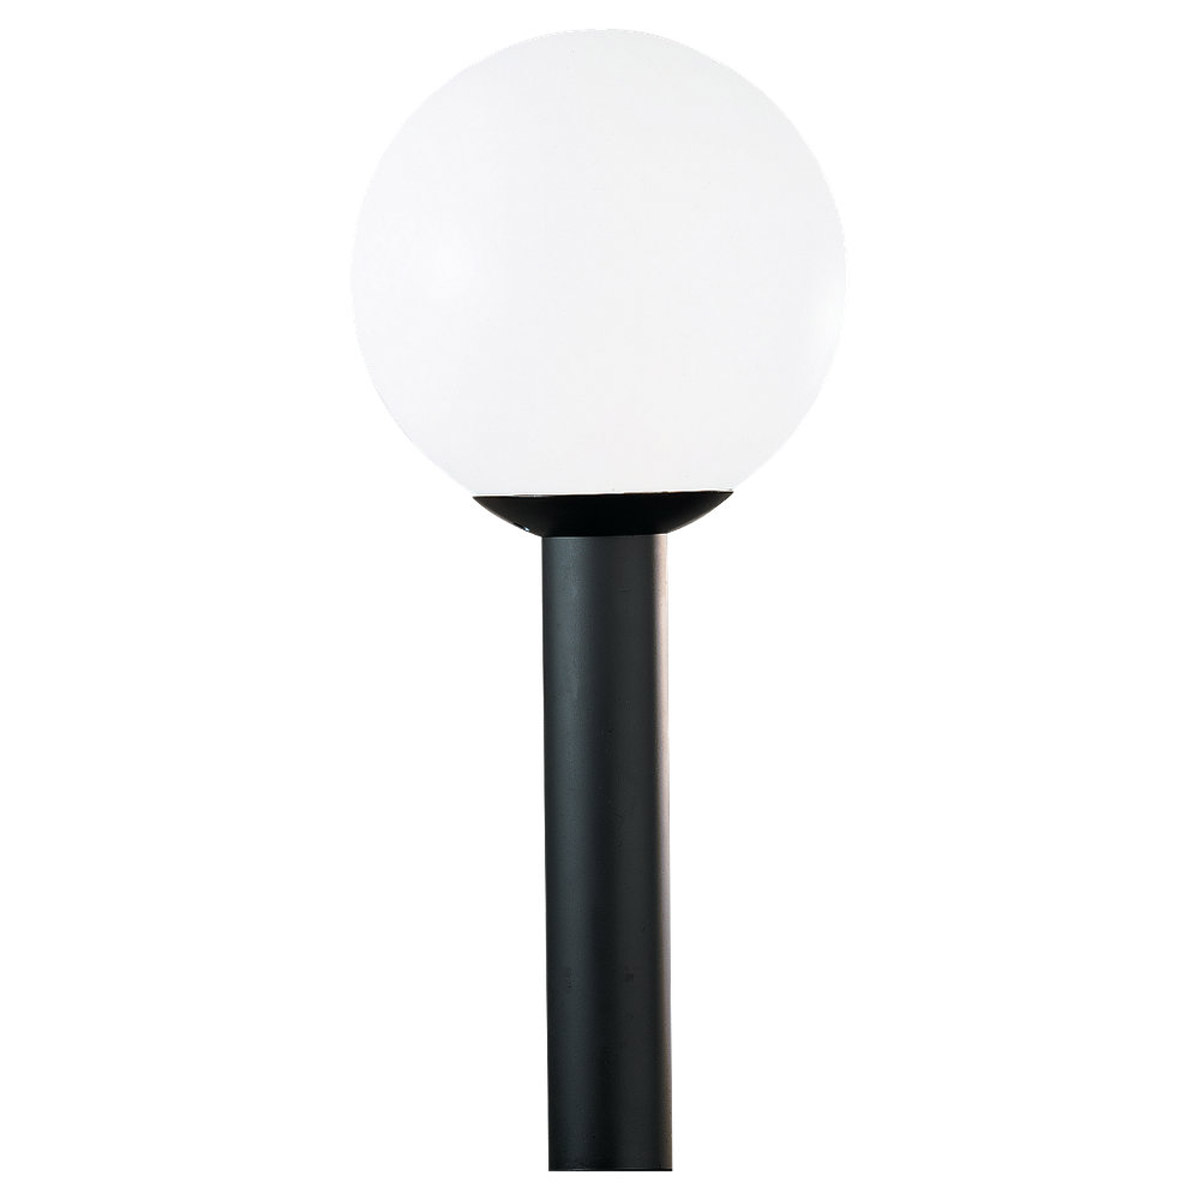 Sea Gull Lighting Outdoor Globe 1 Light Outdoor Post Lantern in White Plastic 8252-68 photo